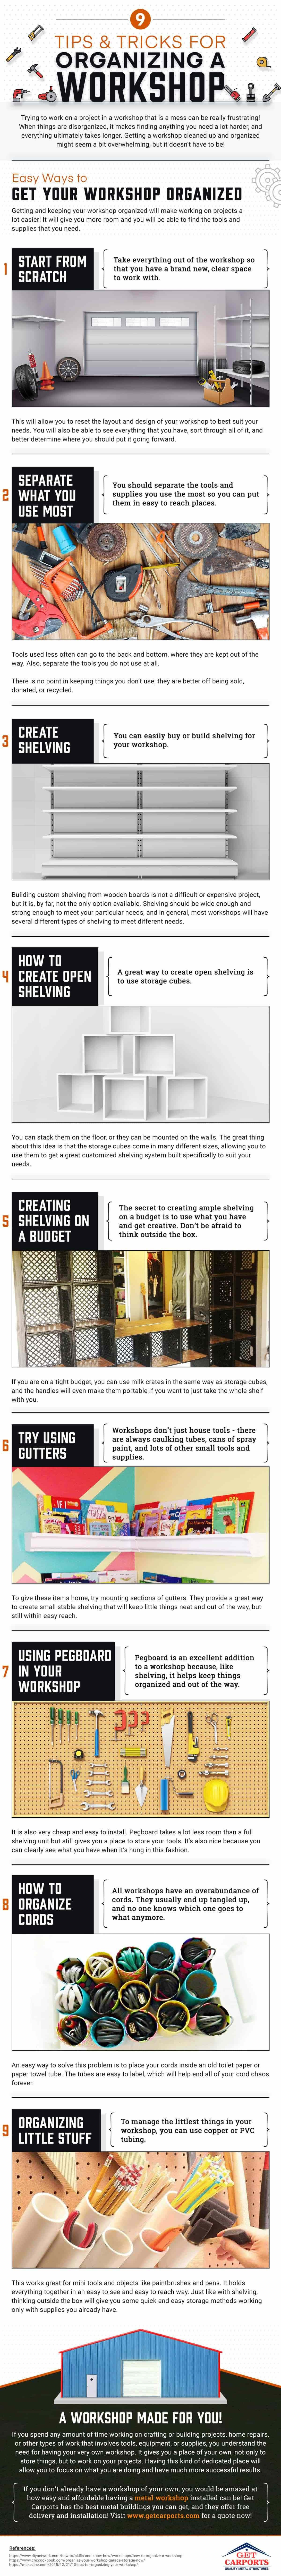 9-tips-and-tricks-for-organizing-a-workshop-infographic